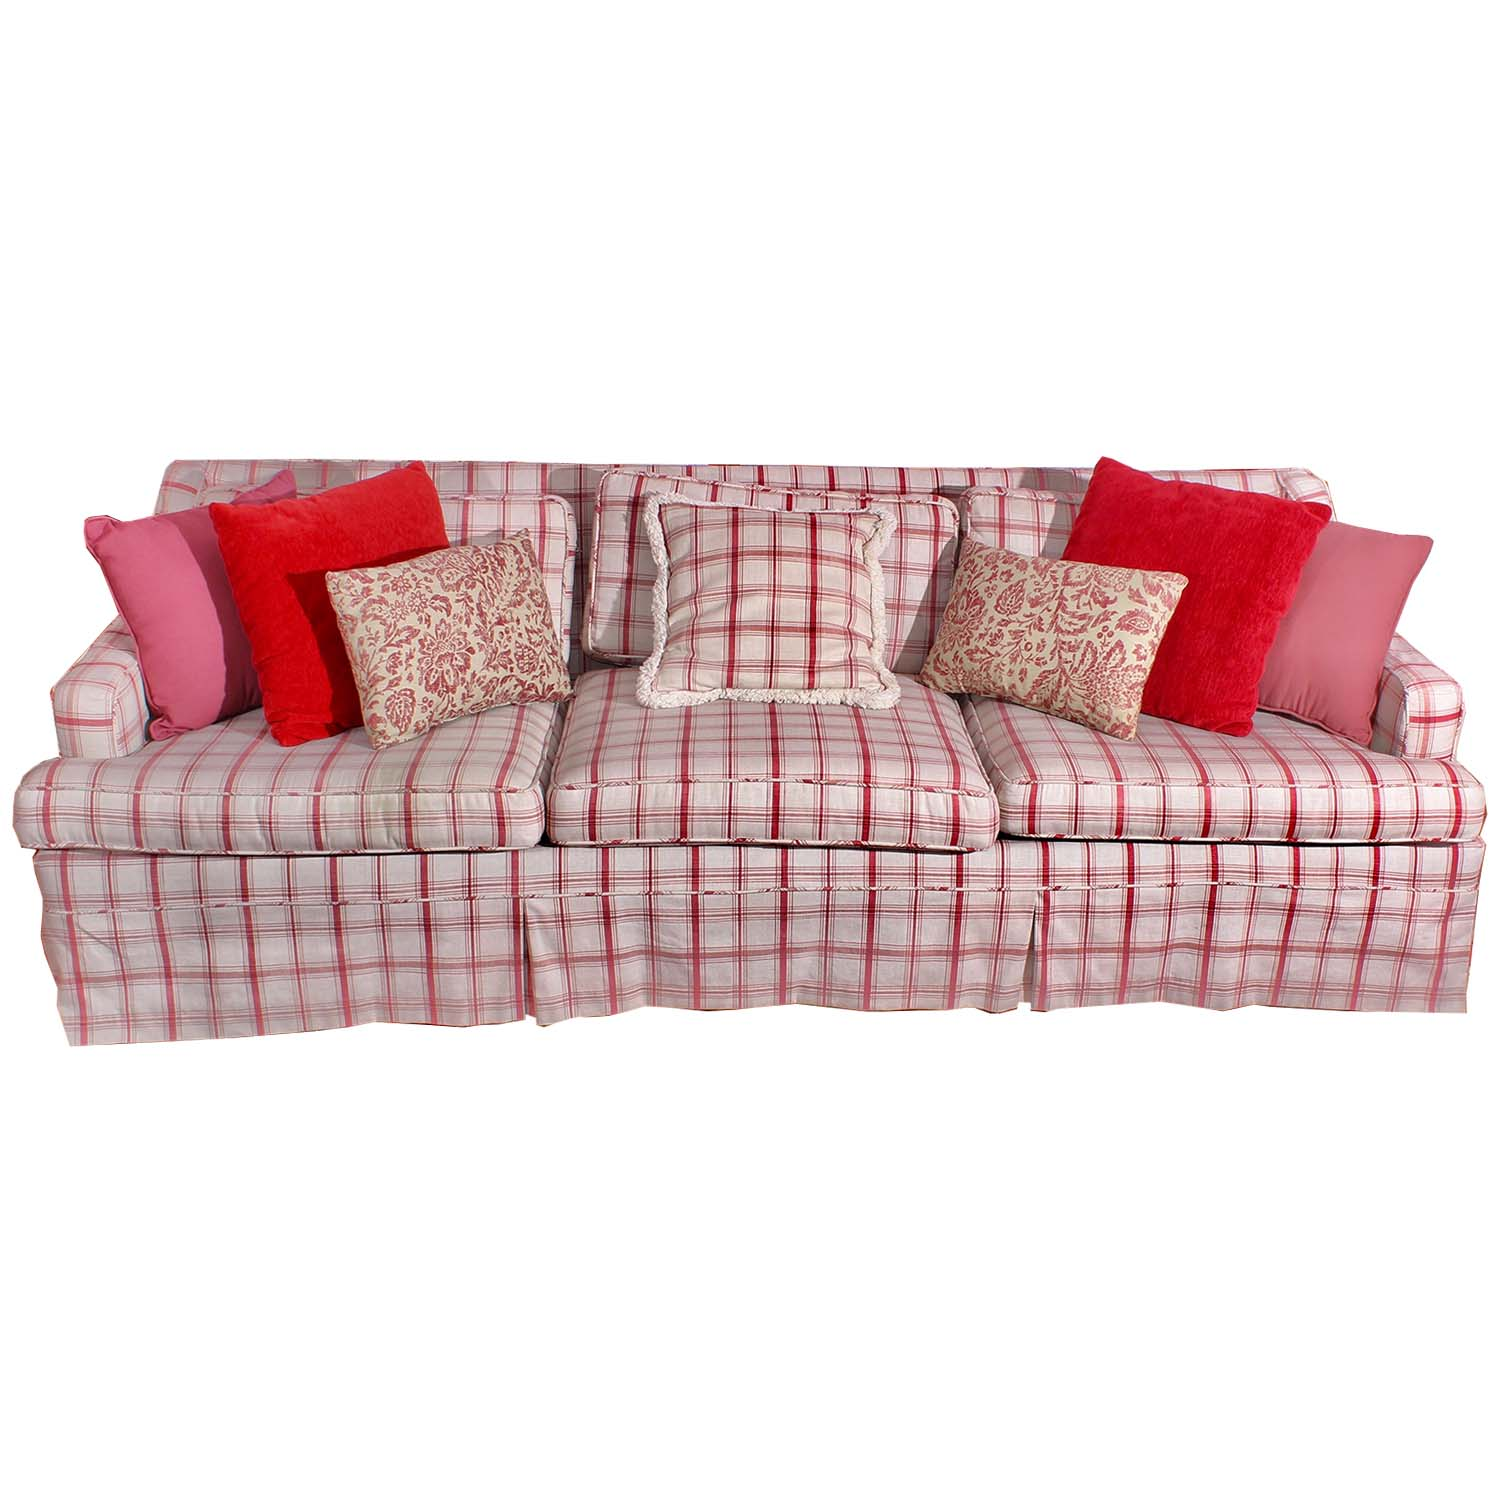 cream sofa throws latex cushions india red and plaid accent pillows ebth